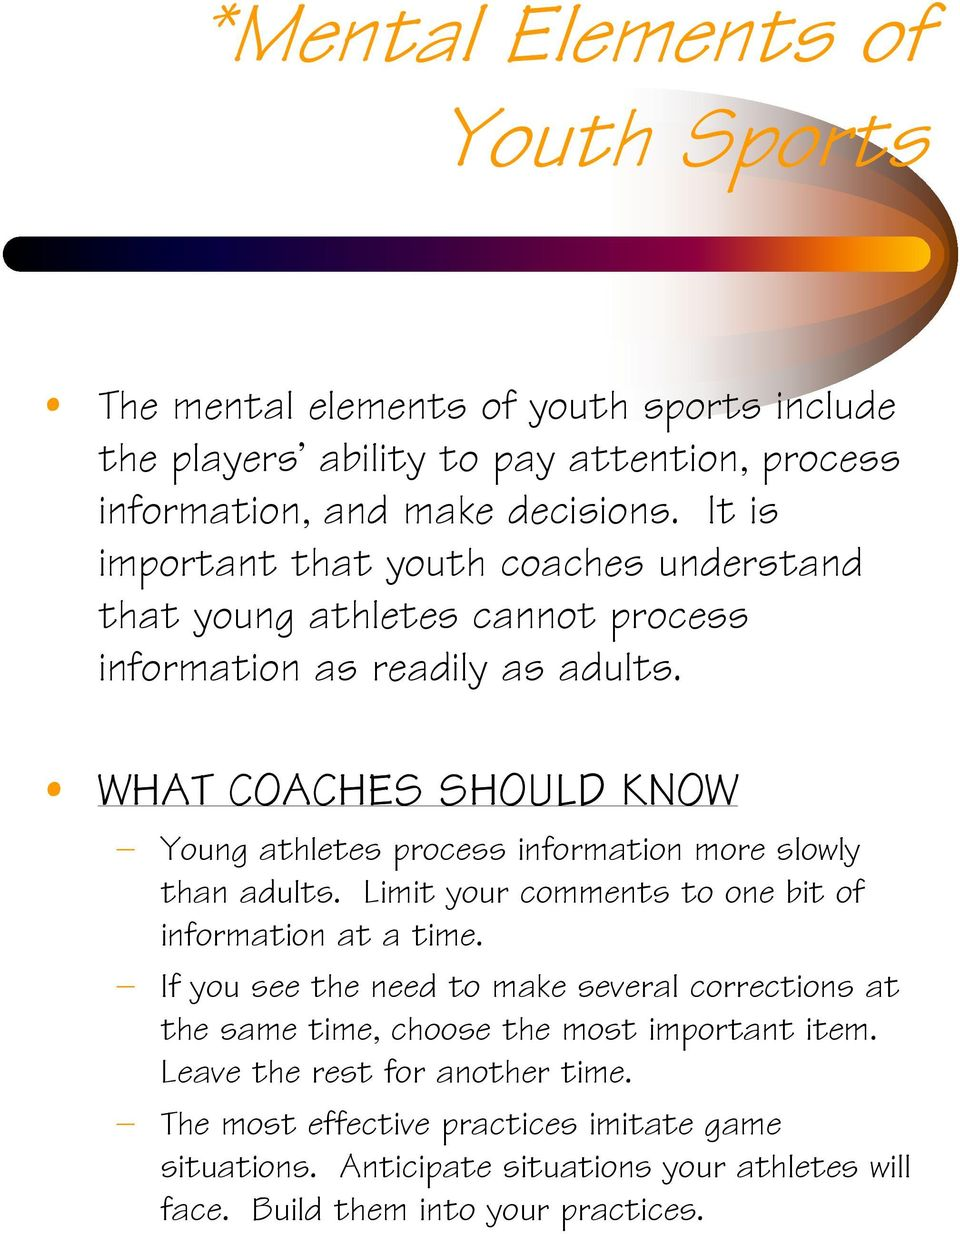 WHAT COACHES SHOULD KNOW Young athletes process information more slowly than adults. Limit your comments to one bit of information at a time.